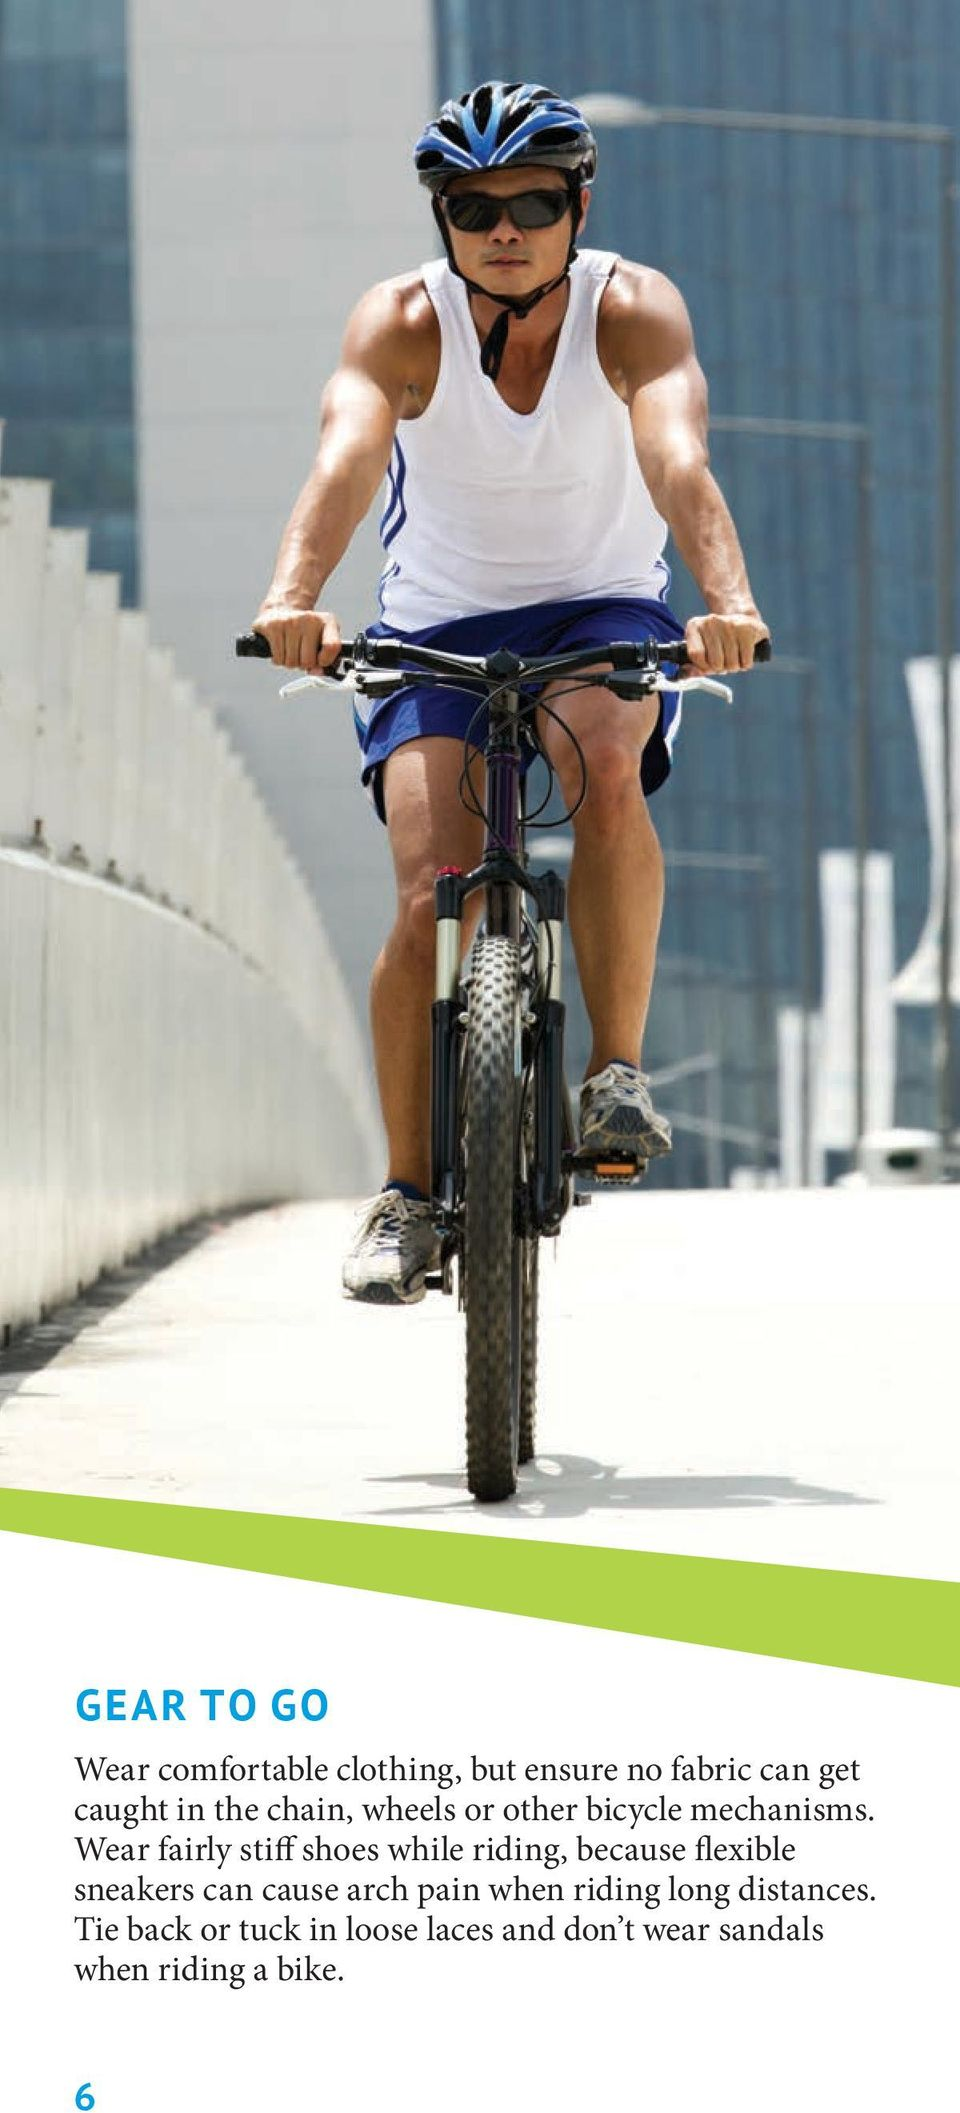 Wear fairly stiff shoes while riding, because flexible sneakers can cause